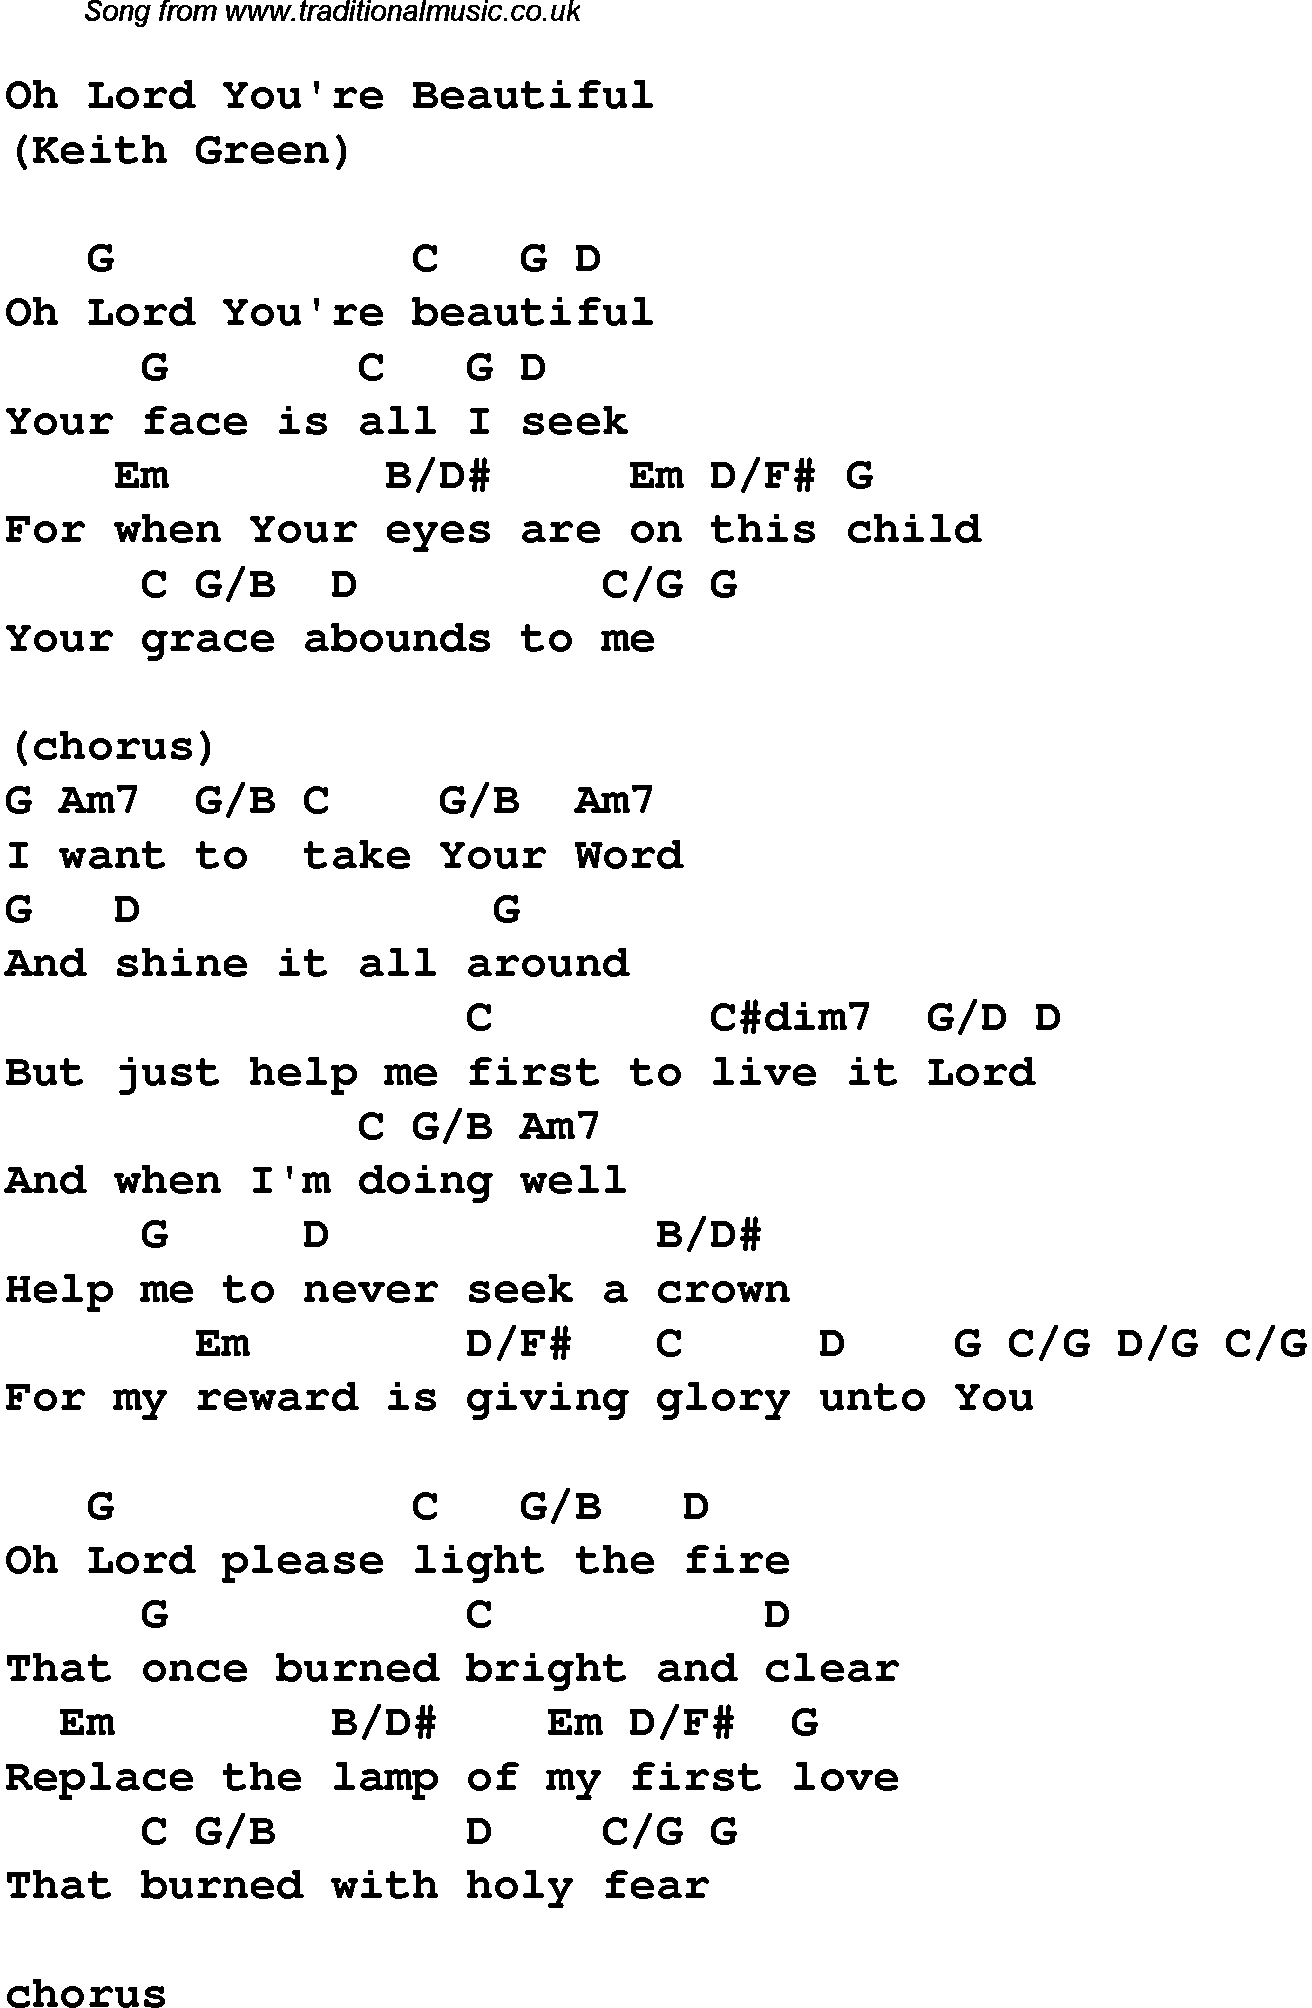 Youre just in love guitar chords